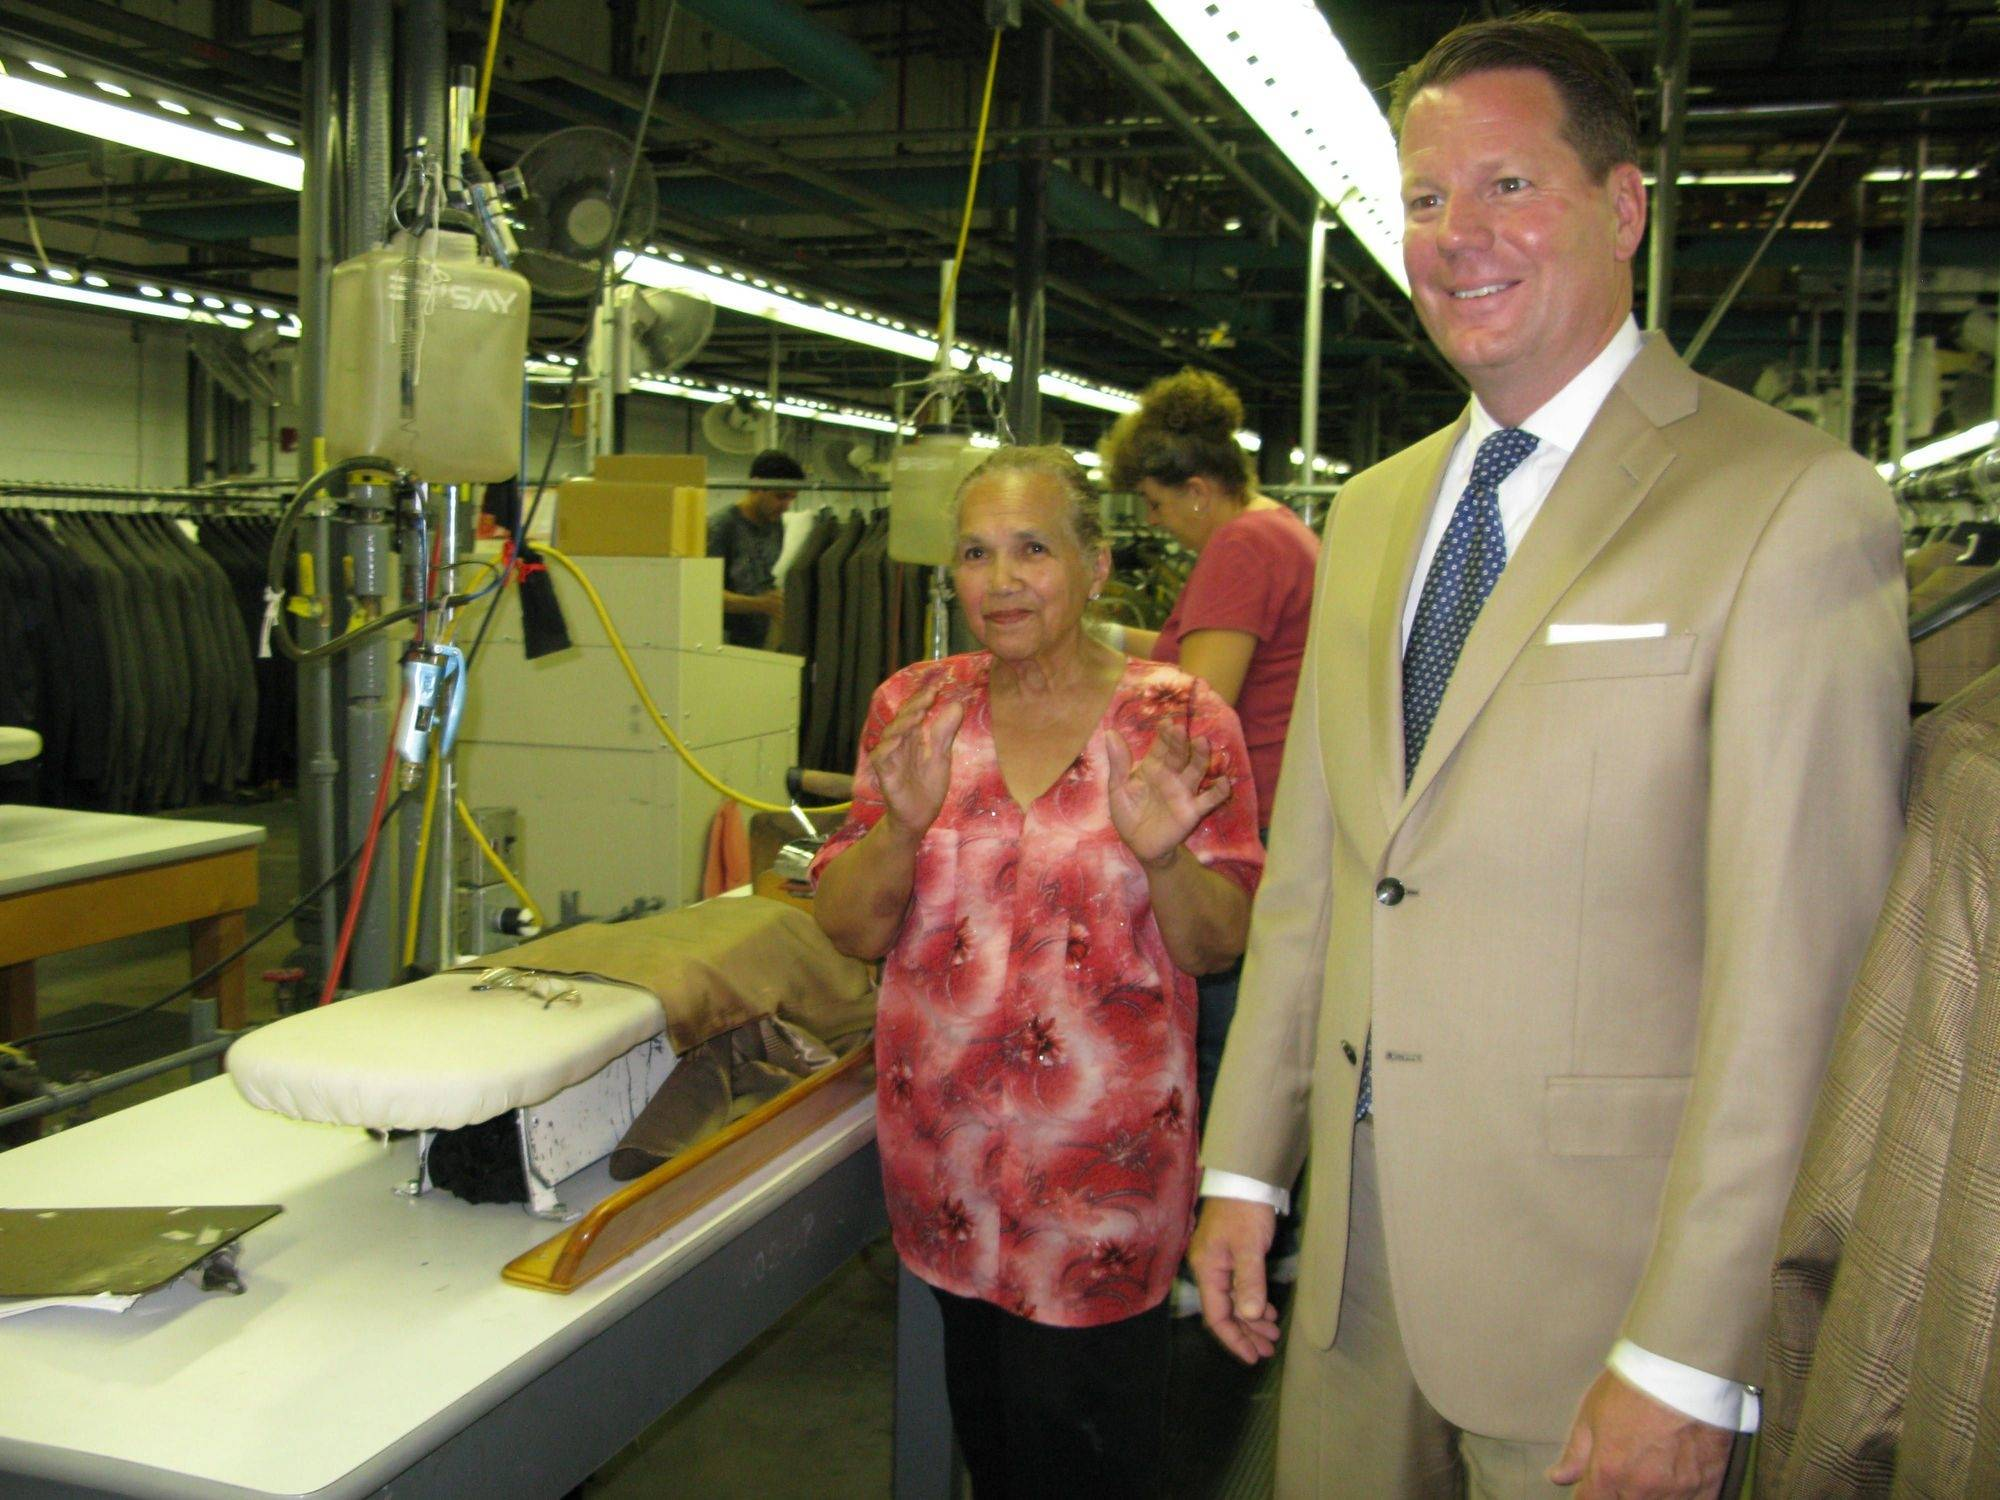 Doug Williams, CEO of HMX LLC, formerly Hart Schaffner Marx, visits with 65-year-old Marina Franceschi, one of the longest-serving employees of the Des Plaines suitmaker. Franceschi said she was reassured after Williams' visit that the factory won't be closing in the near future.